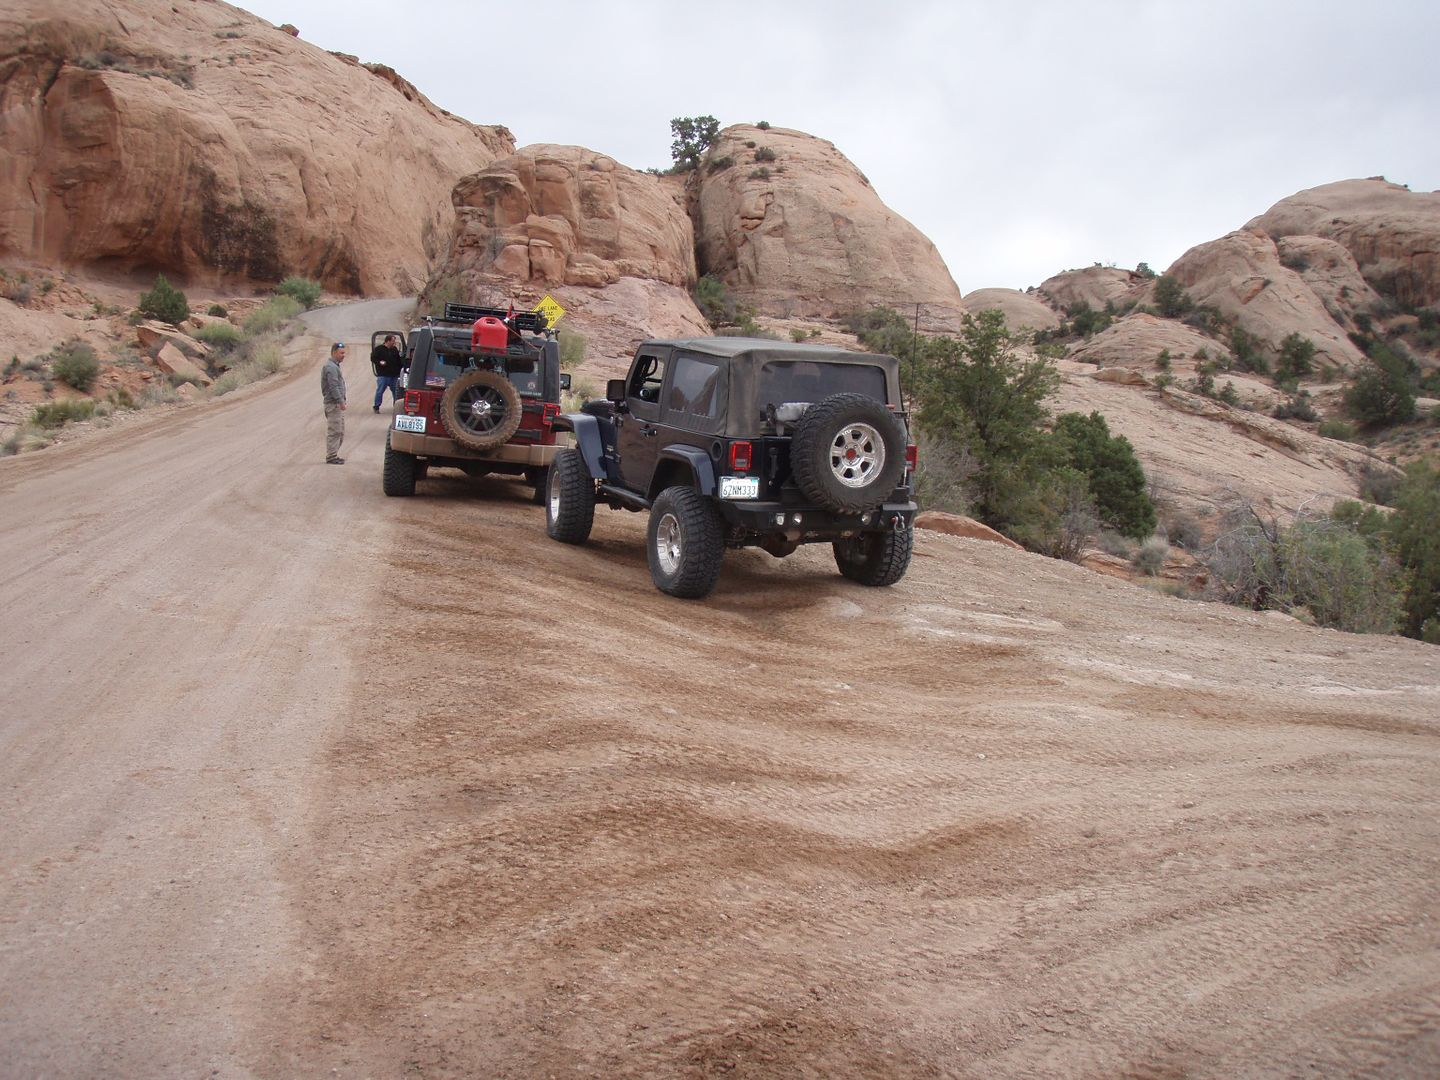 Fins and Things - Waypoint 6: Intersection - Sand Flats Road